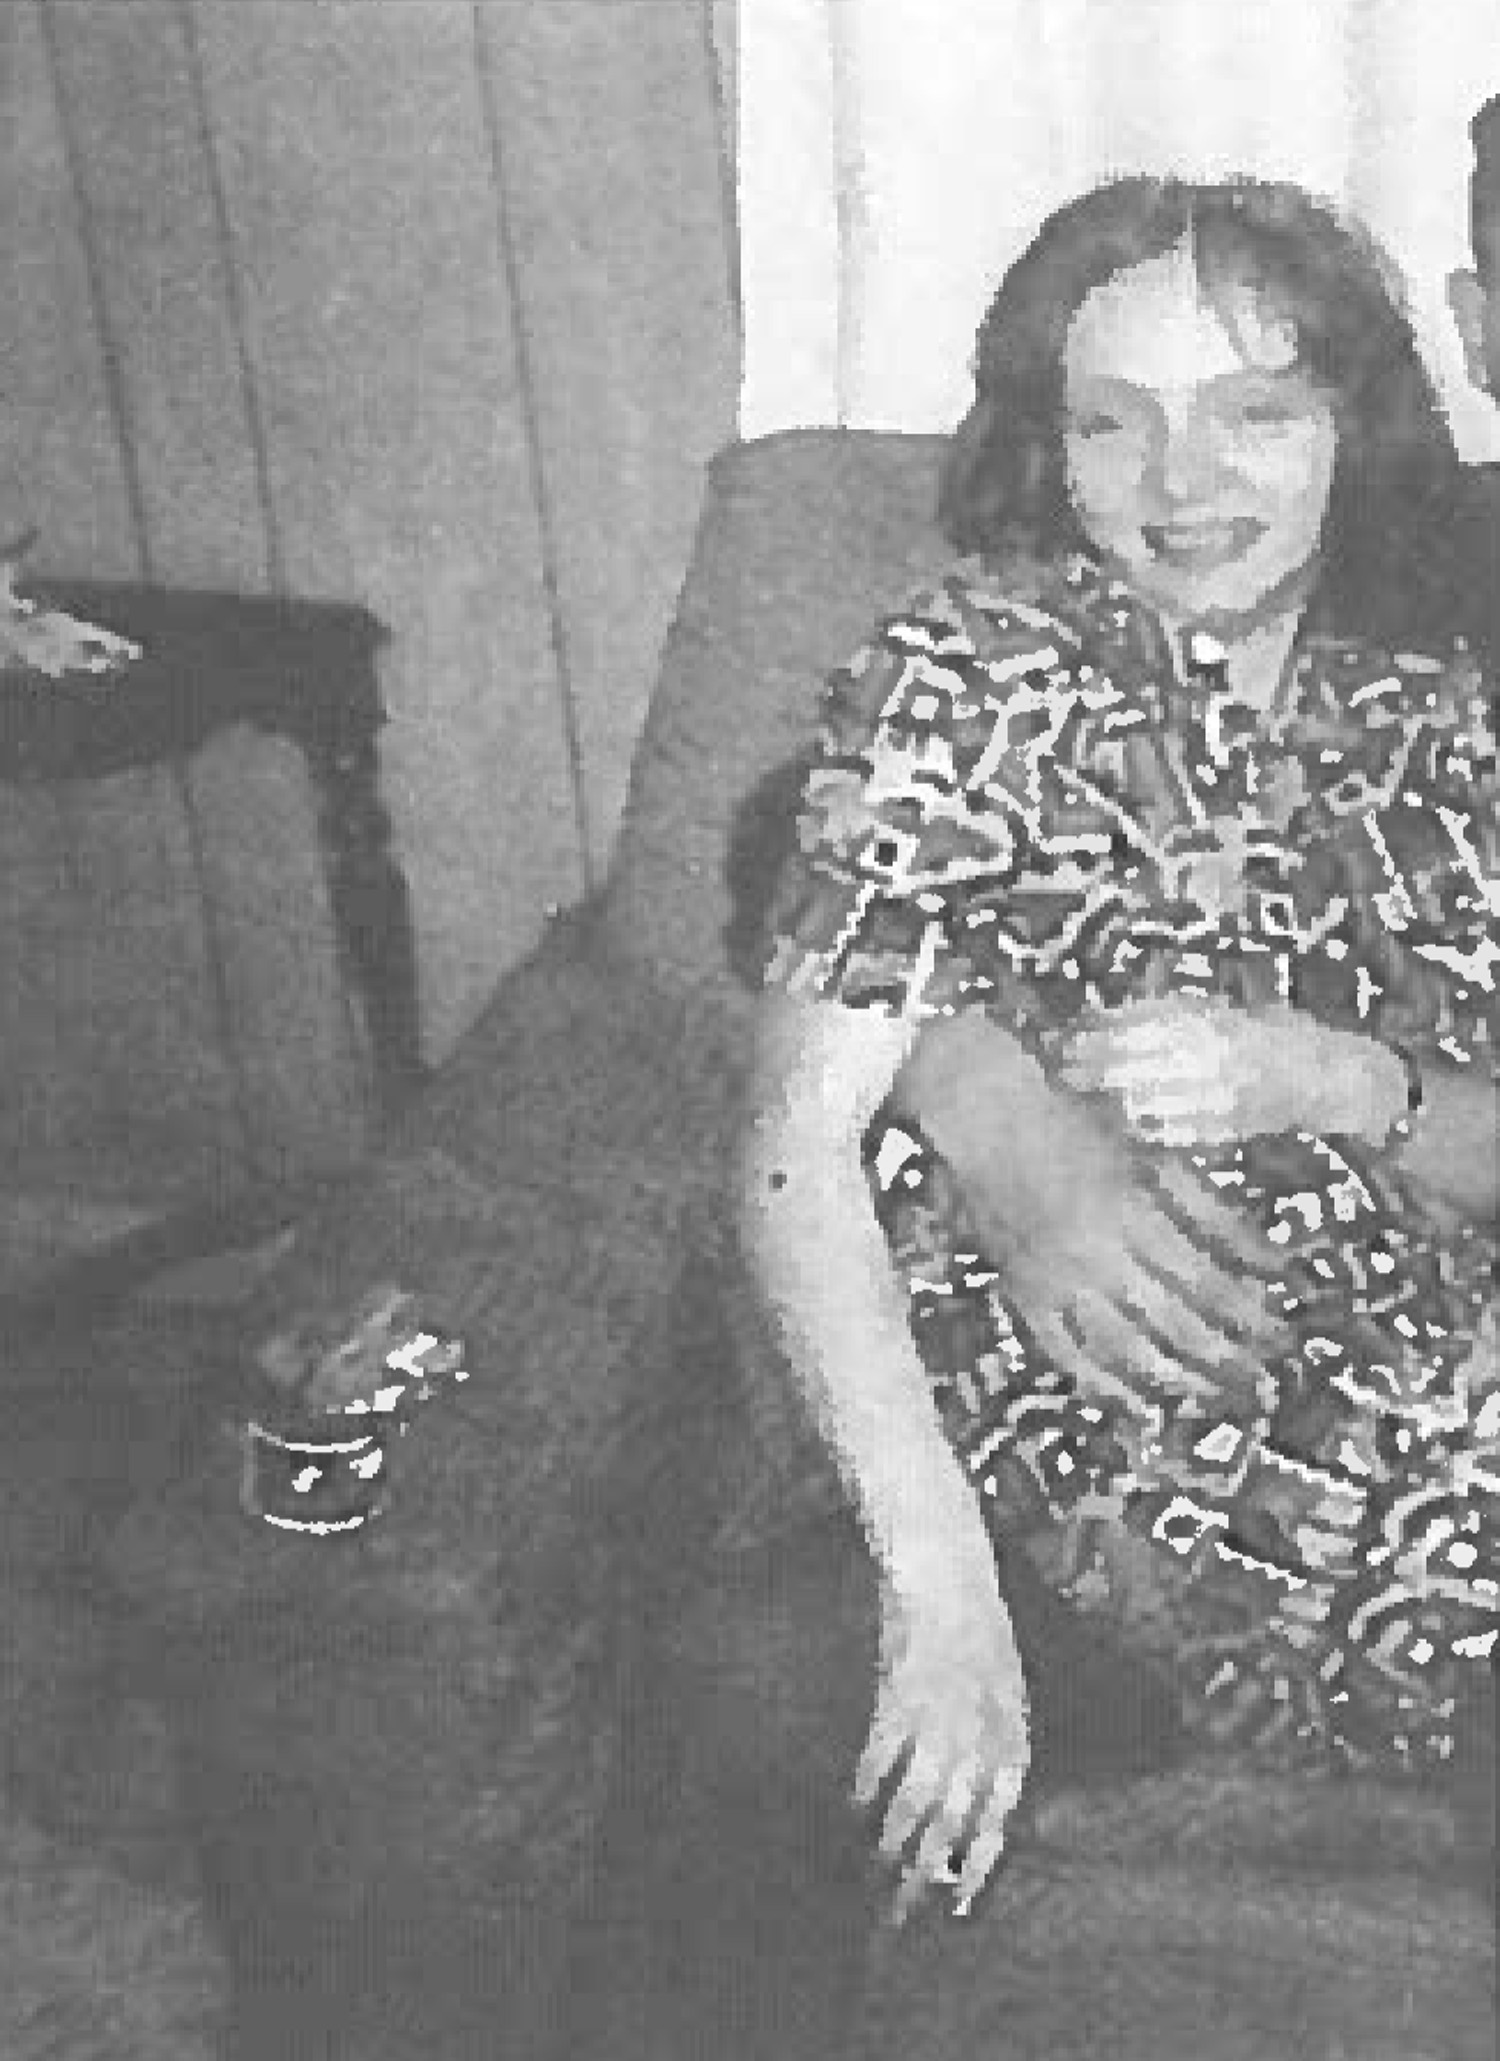 """After 47 years, Harlan's """"Mountain Jane Doe"""" was identified as Sonja Kaye Blair-Adams. Her body first was discovered in June 1969."""